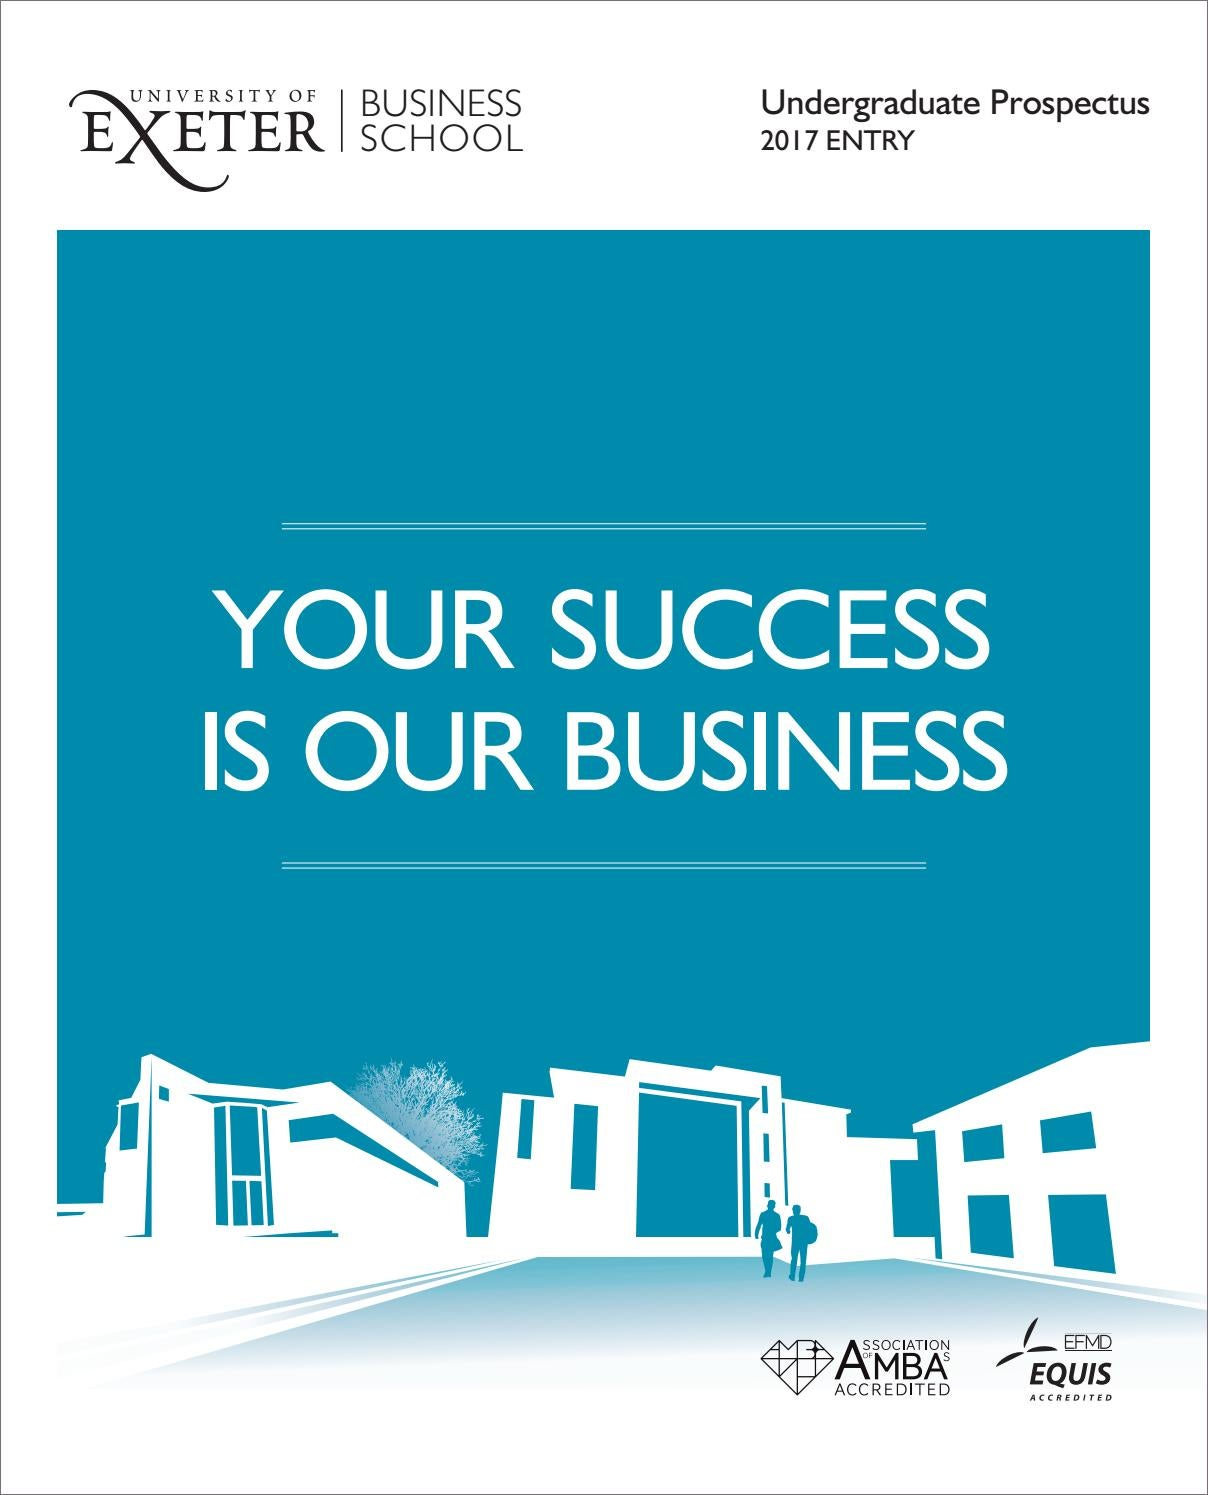 Economics And Finance Bsc University Of Exeter